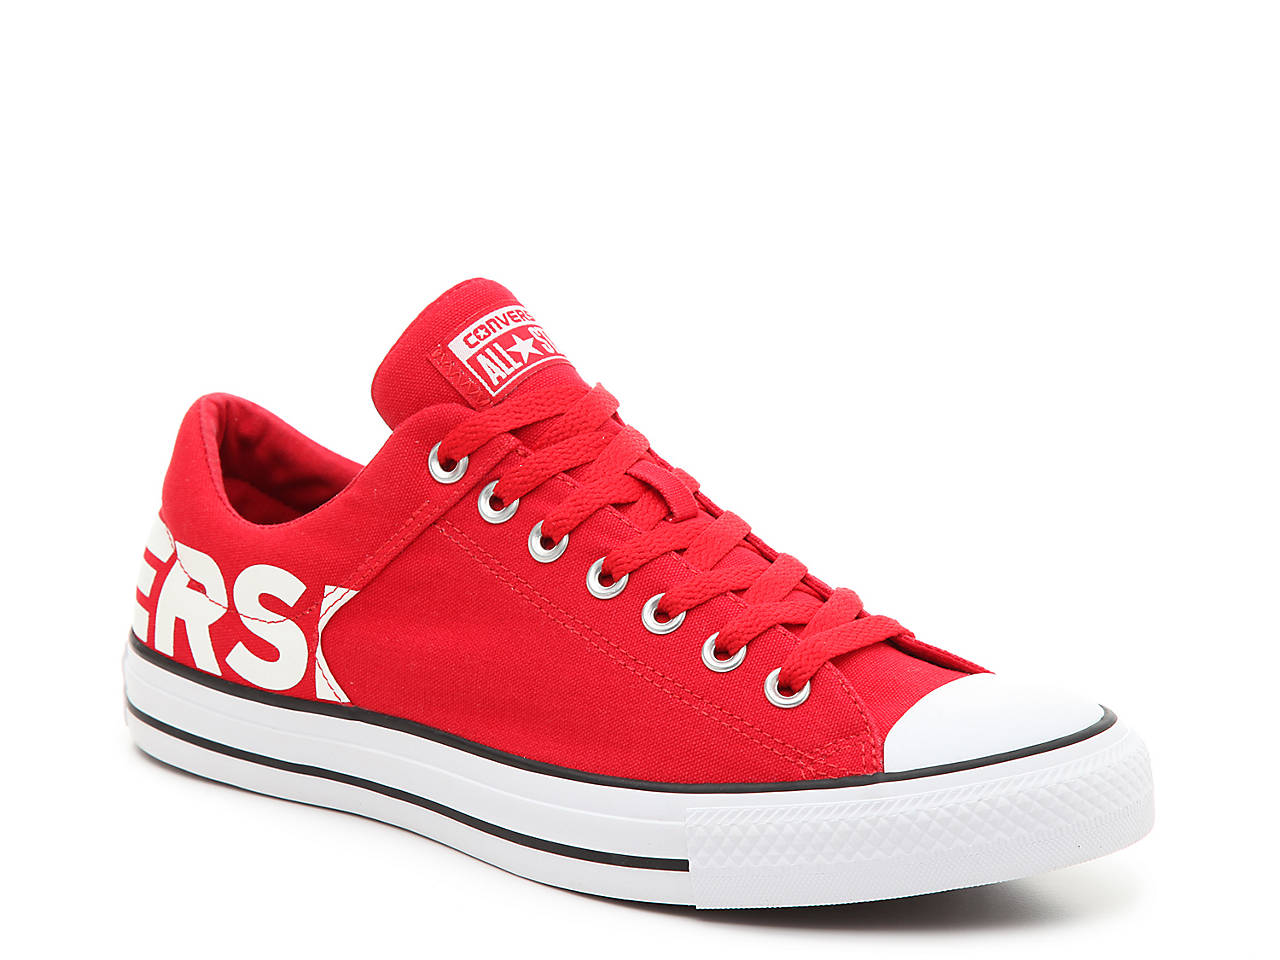 6ce7556809dc Converse Chuck Taylor All Star Word Sneaker - Women s Women s Shoes ...